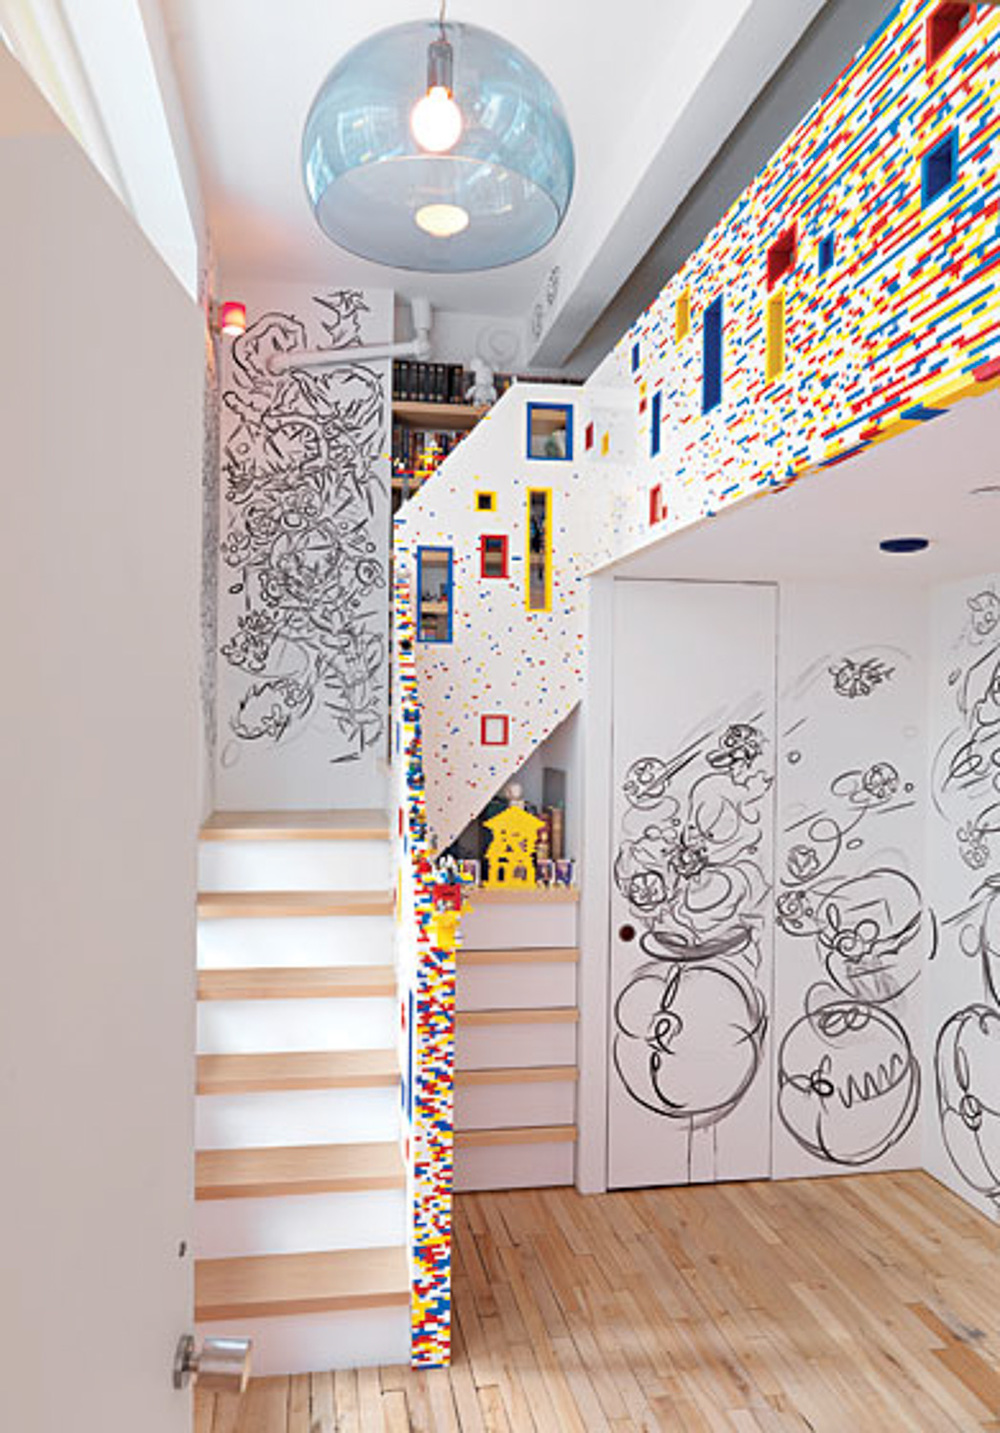 Chelsea Loft LEGO Stair_I-Beam Design _Photo by Thomas Loof_NY Magazine.jpg